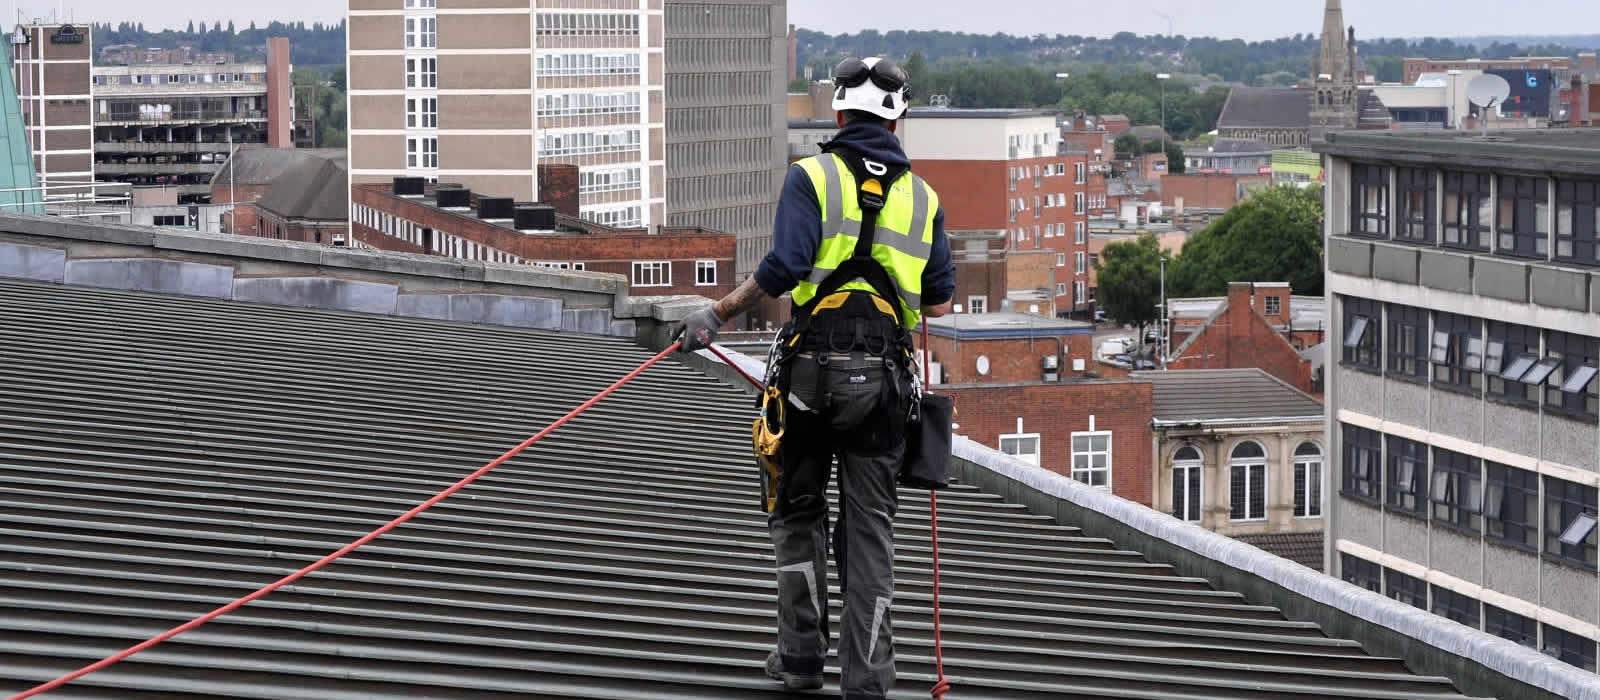 roofing and cladding contractor North West